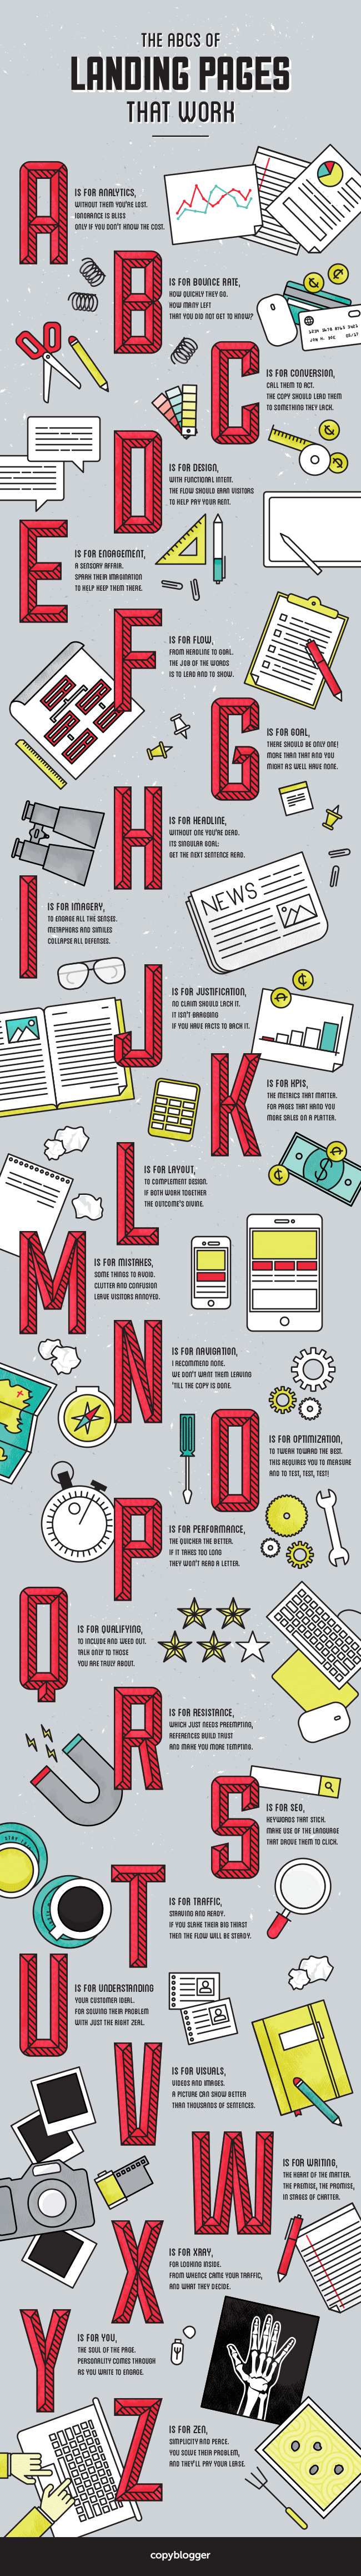 making-high-converting-landing-pages-is-as-easy-as-abc-infographic